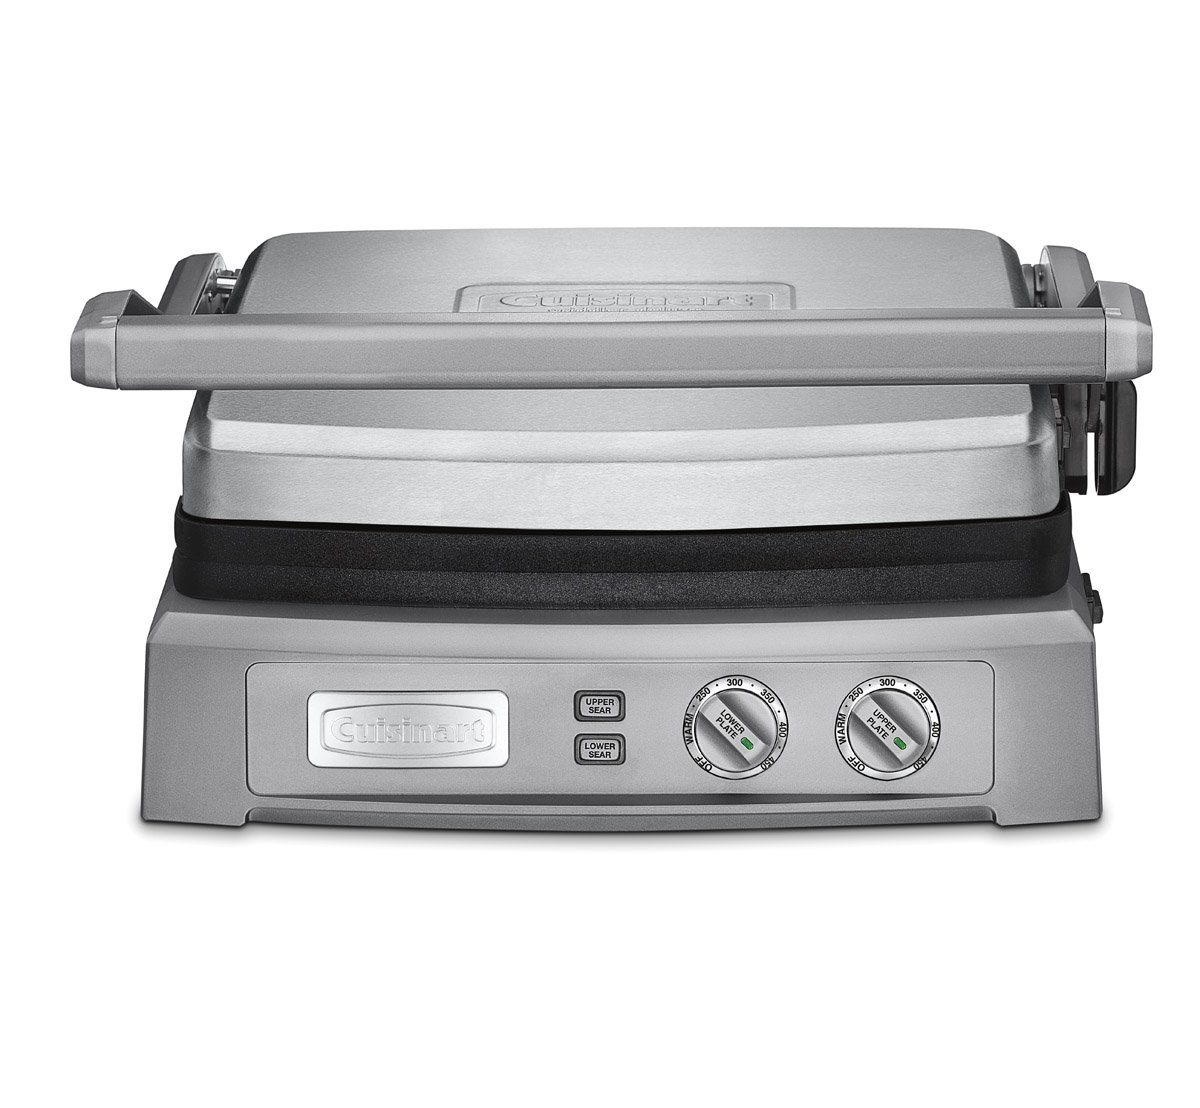 Cuisinart Griddler Electric Grill & Griddle - Griddler - Deluxe GR-150C